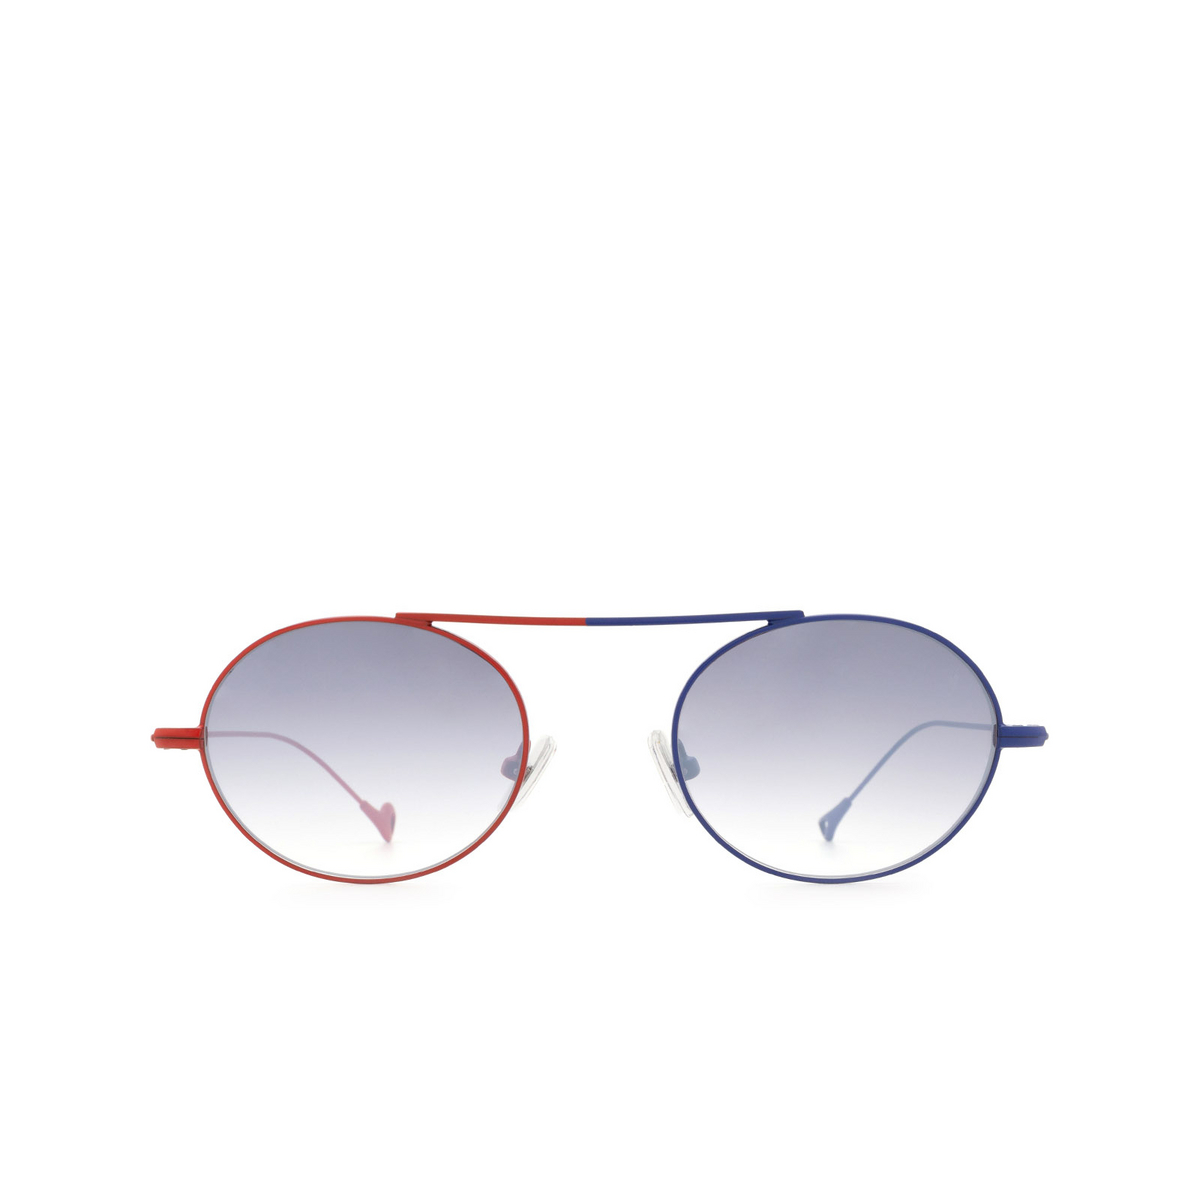 Eyepetizer® Oval Sunglasses: S.eularia color Red & Blue C.18-27F - front view.